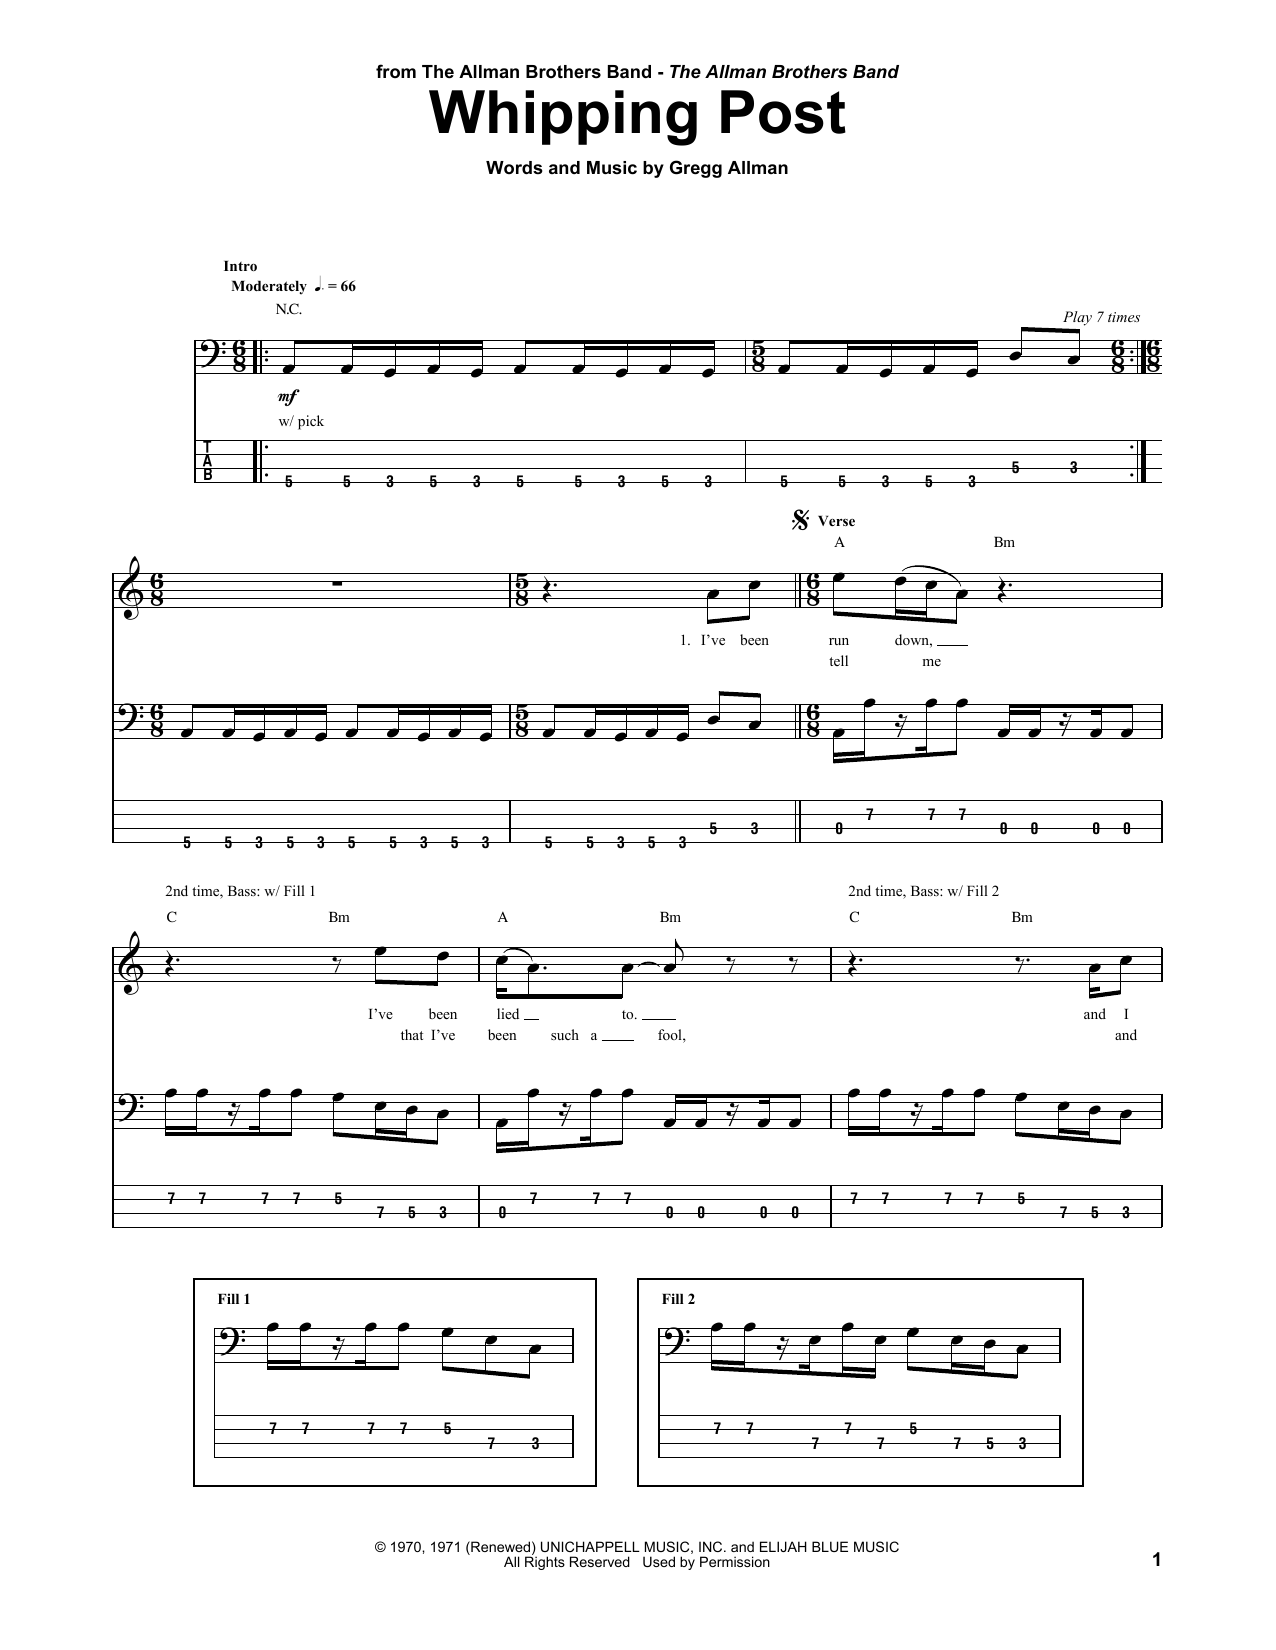 Tablature guitare Whipping Post de The Allman Brothers Band - Tablature Basse